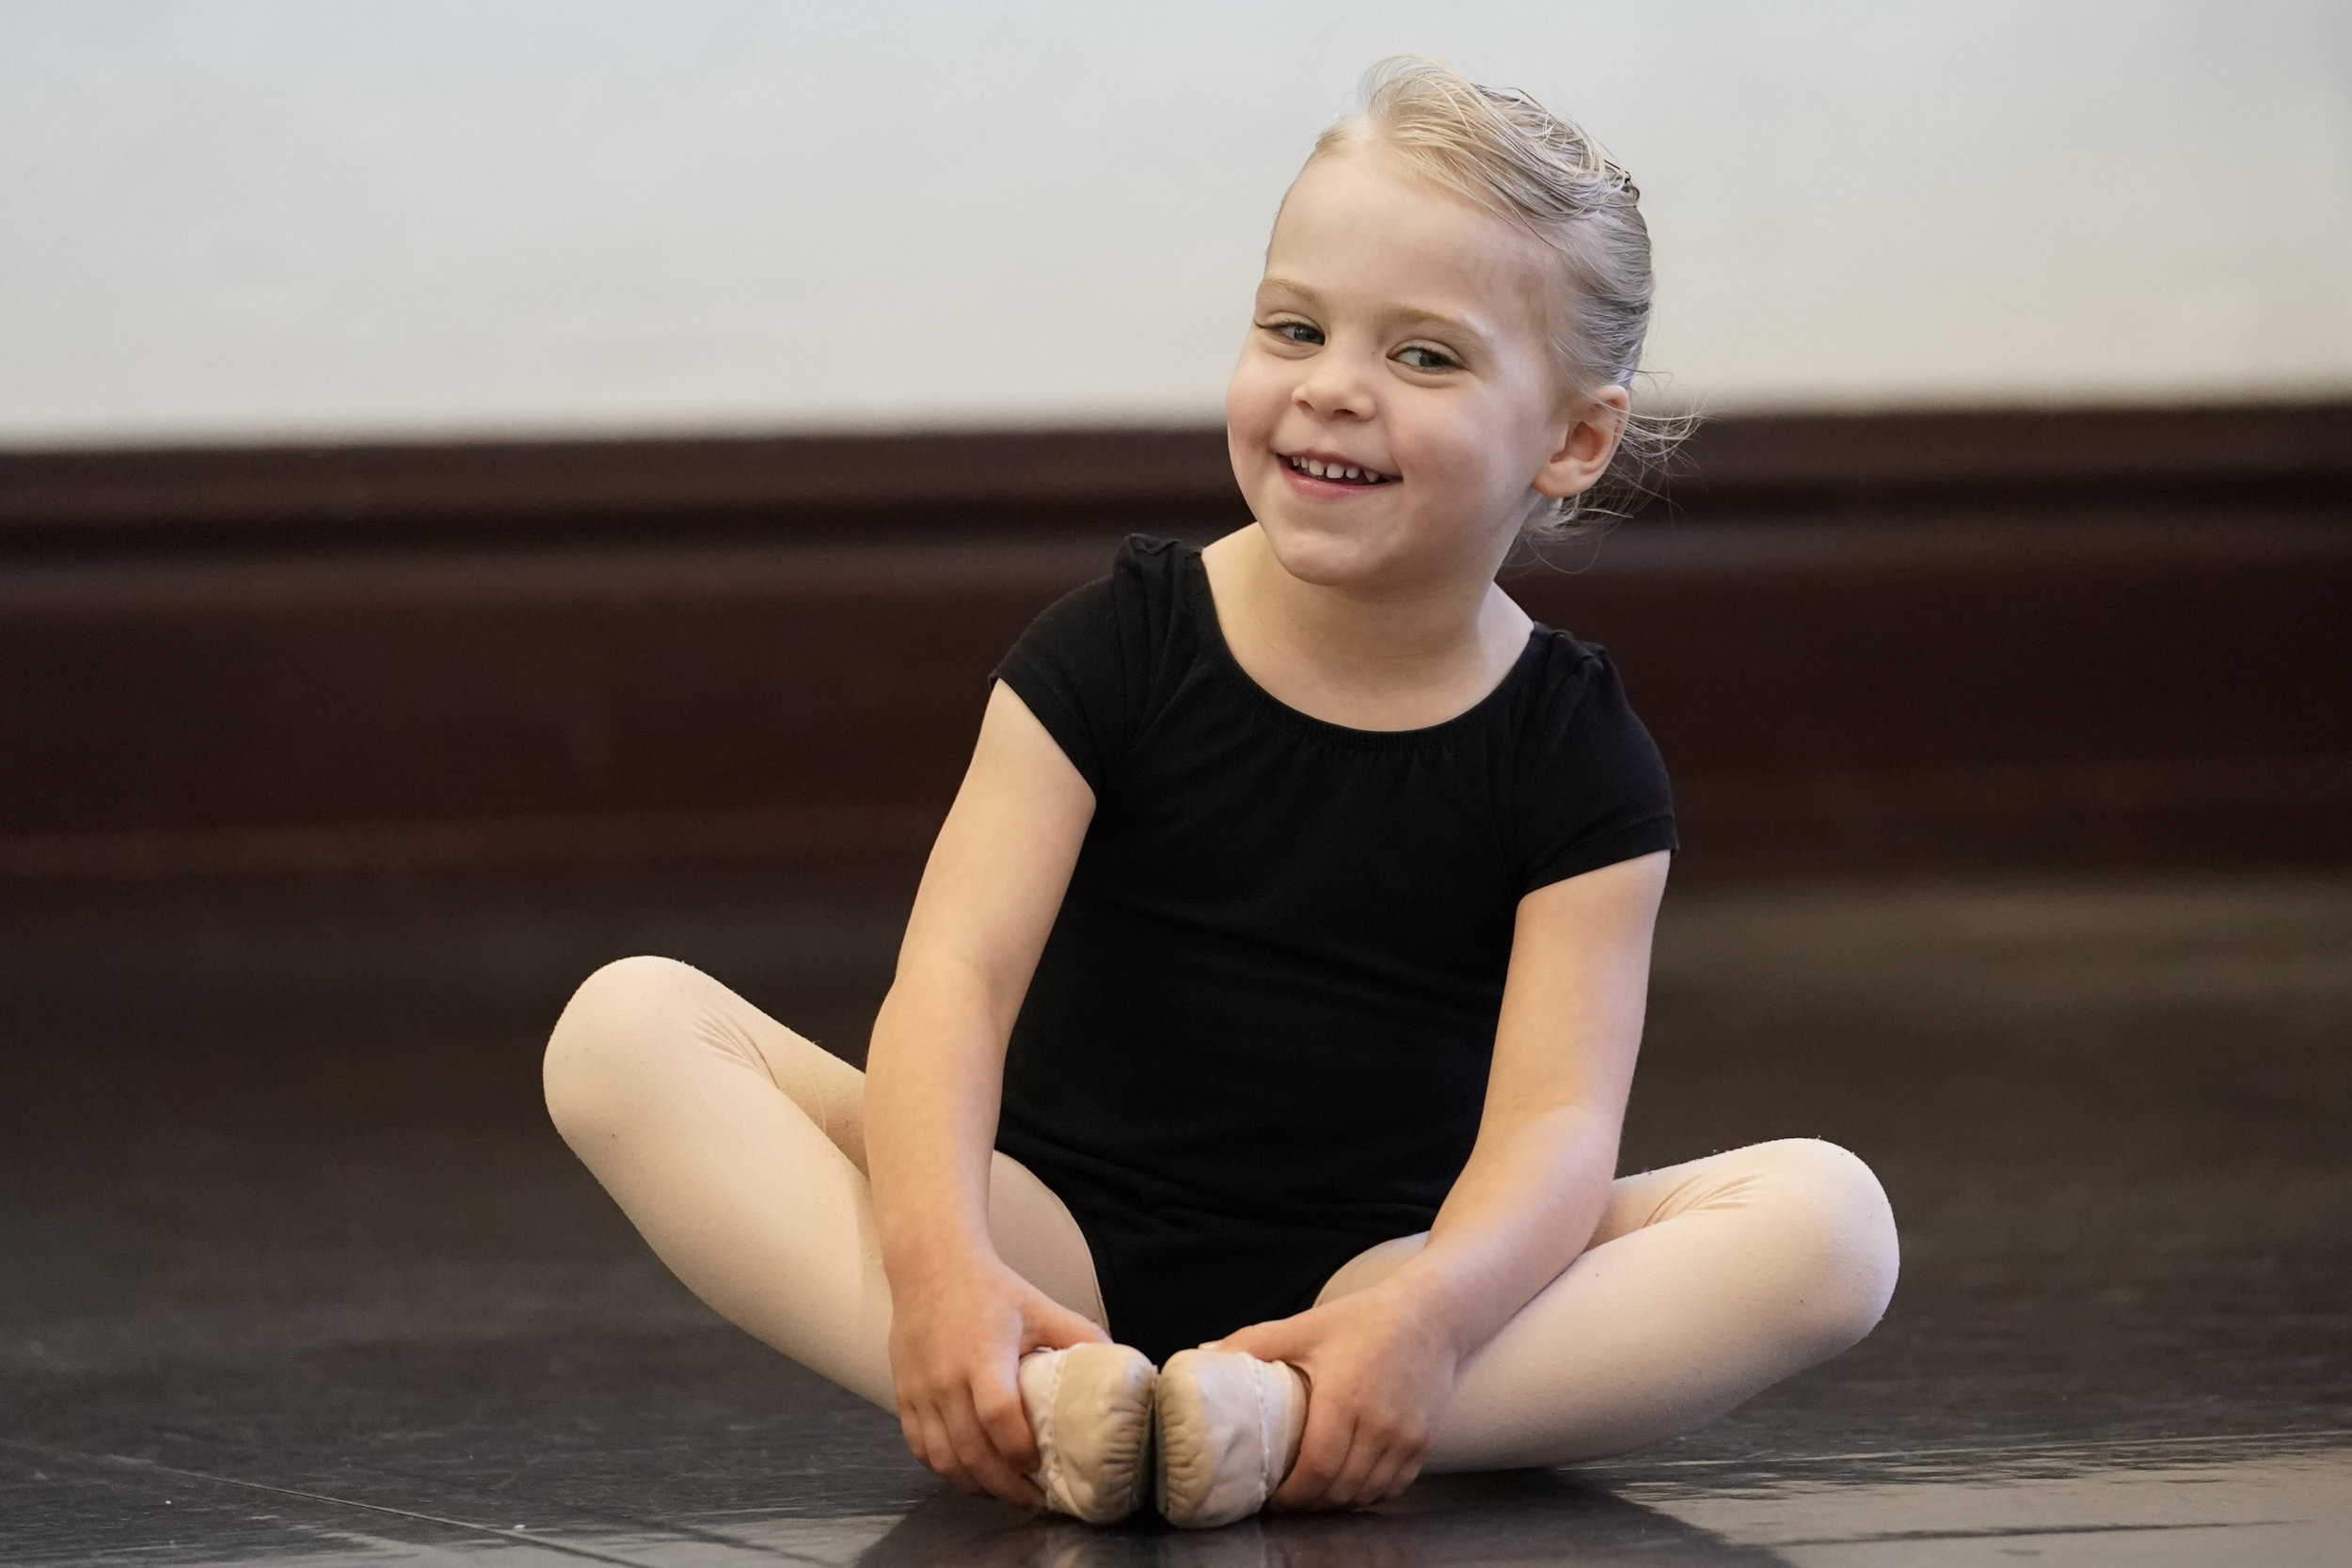 Take your first class with us! - Thrive in our Children's Division (ages 3-8)